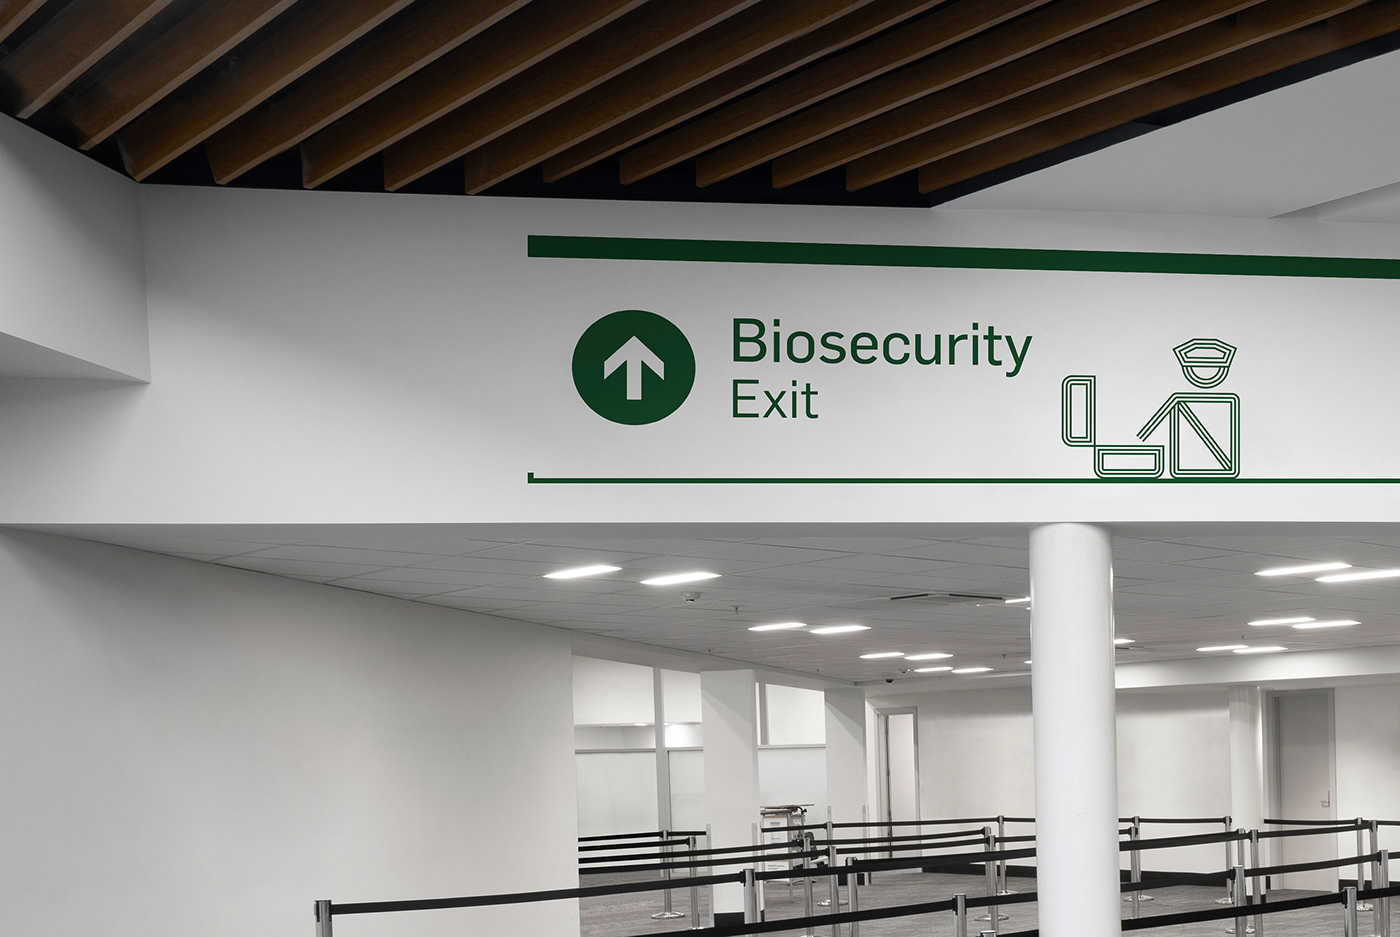 wayfinding airport New Zealand queenstown pictograms icon set signage system concept development Space design visual identity